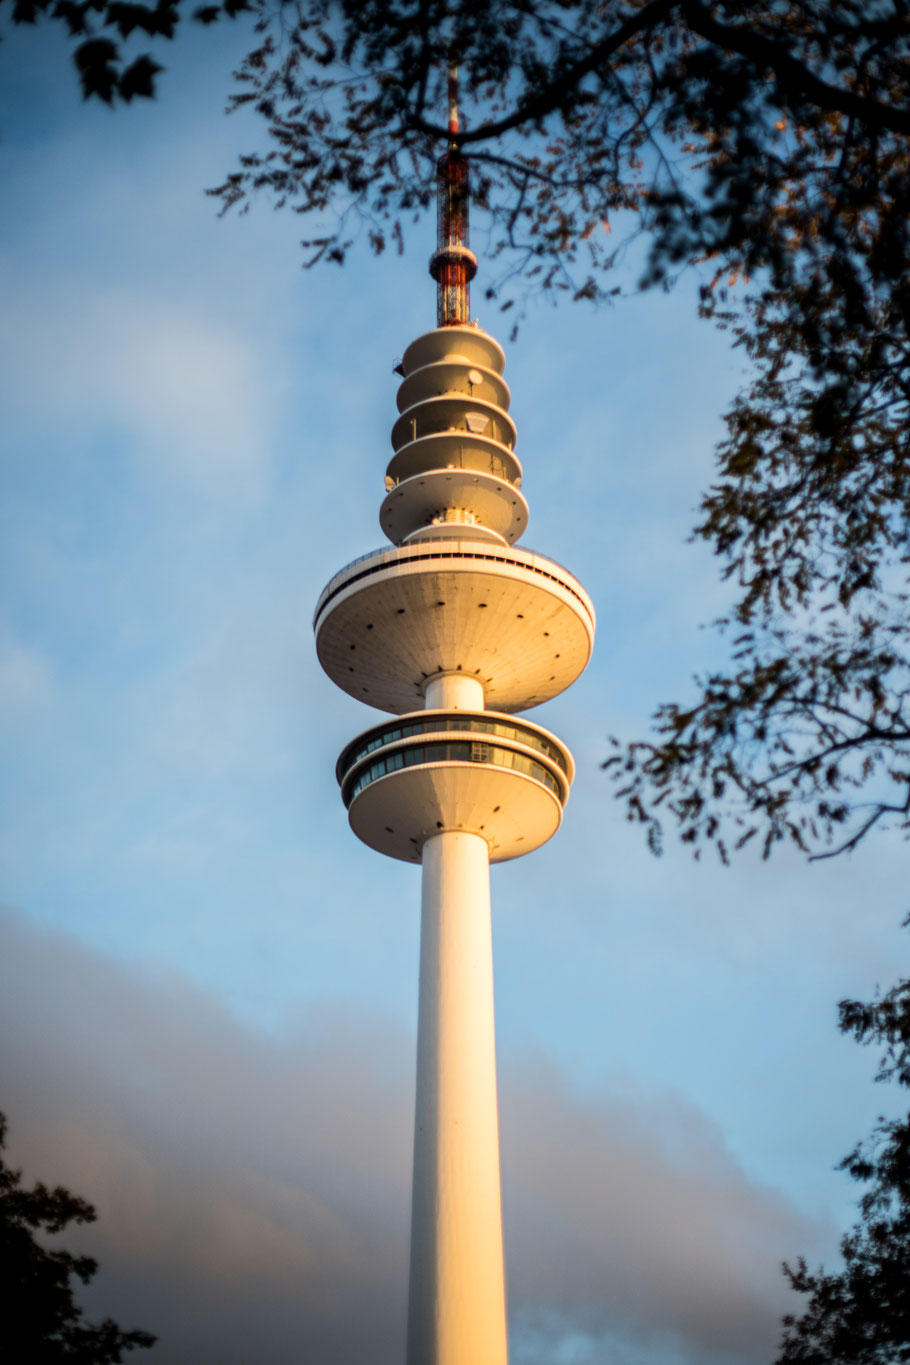 The Hamburg television tower against a partially cloudy autumn sky at sunset, surrounded by tree branches.